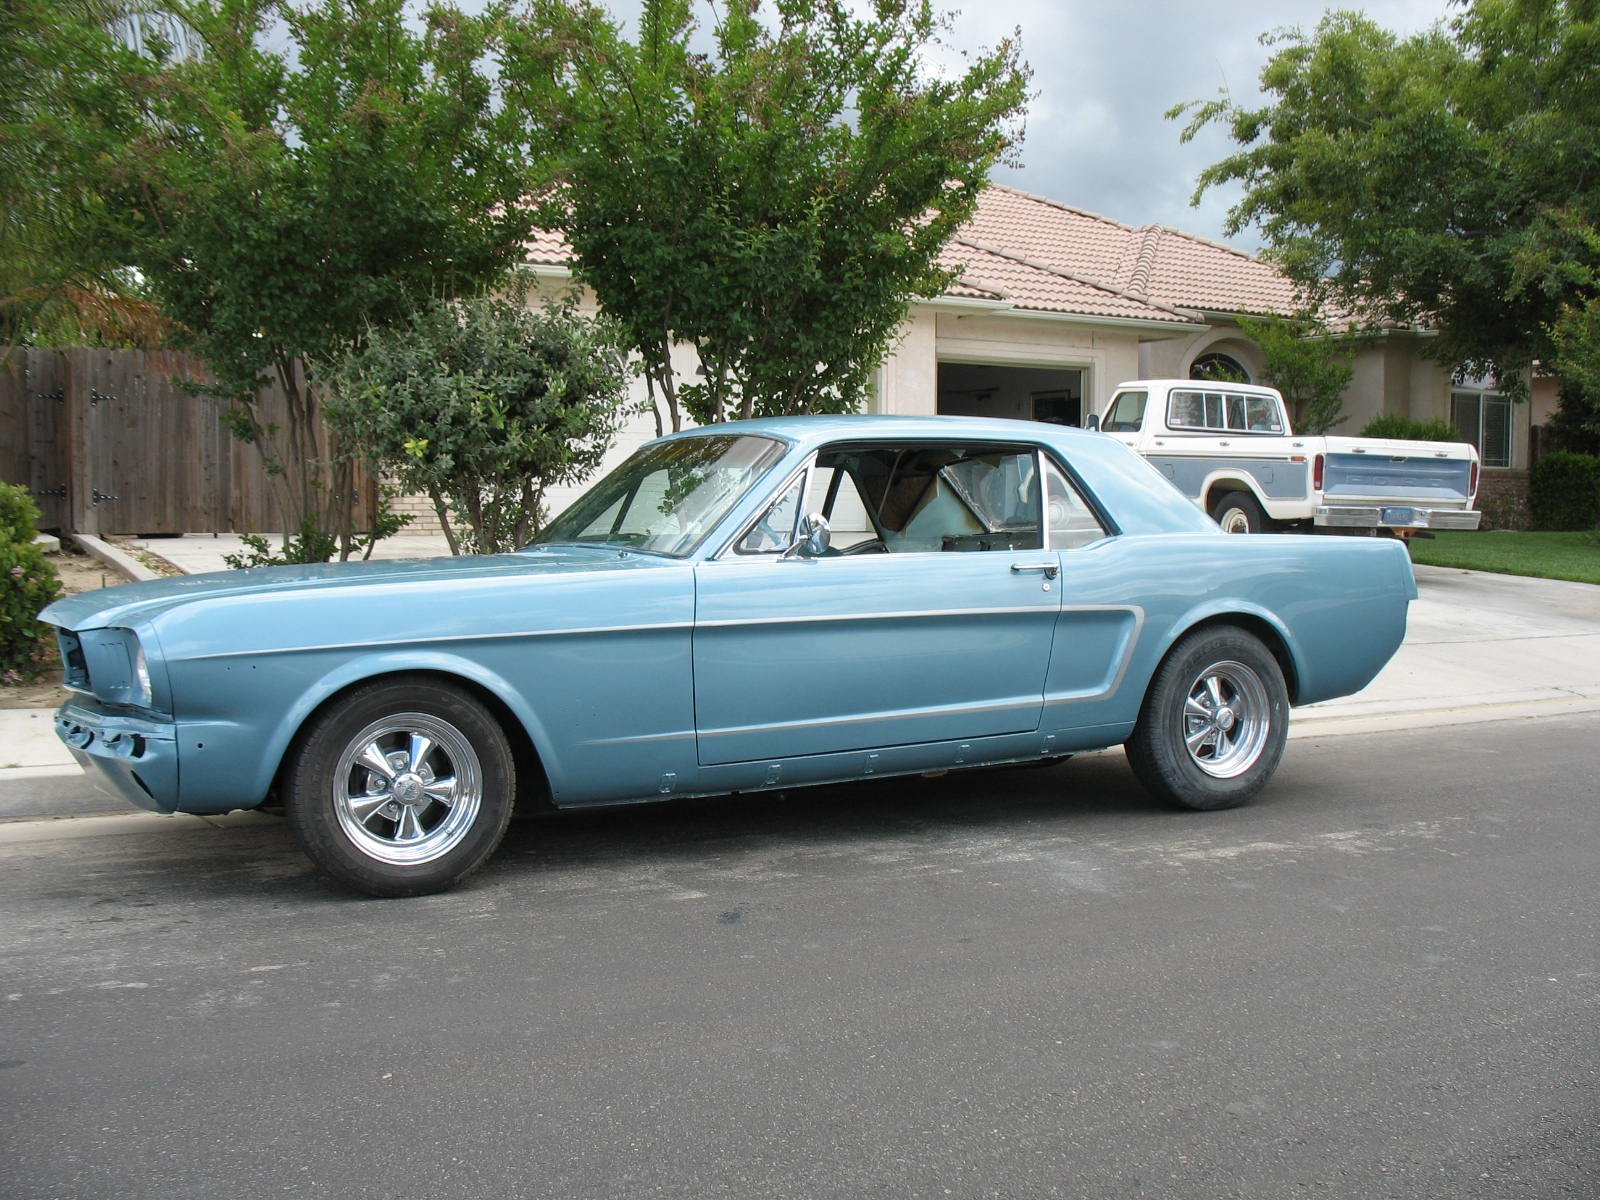 1966 mustang what is the real tahoe turquoise color ford mustang forum. Black Bedroom Furniture Sets. Home Design Ideas